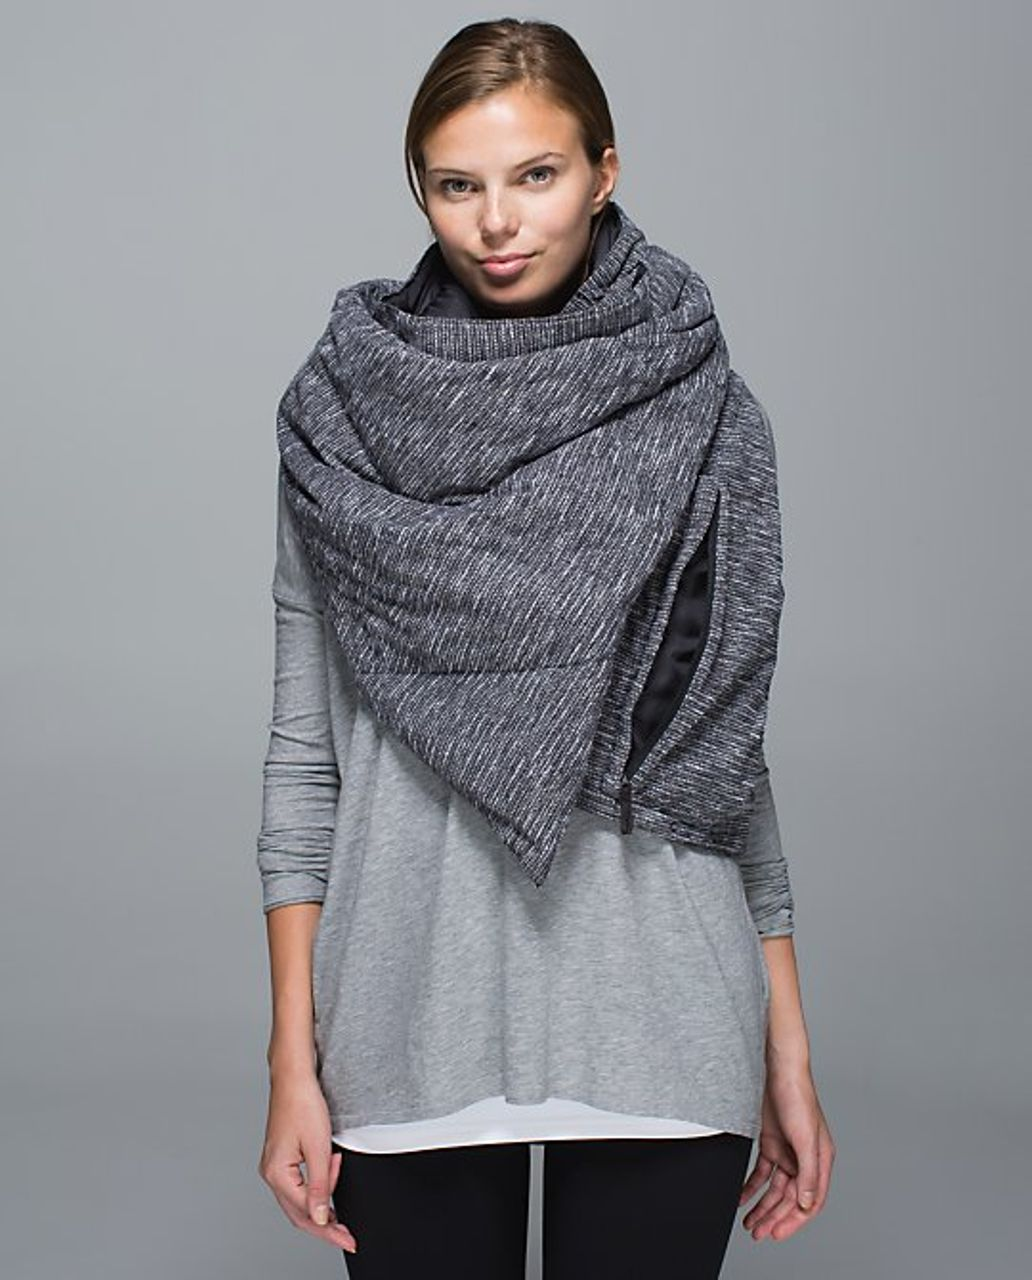 Lululemon Fluffed Up Scarf - Coco Pique Black